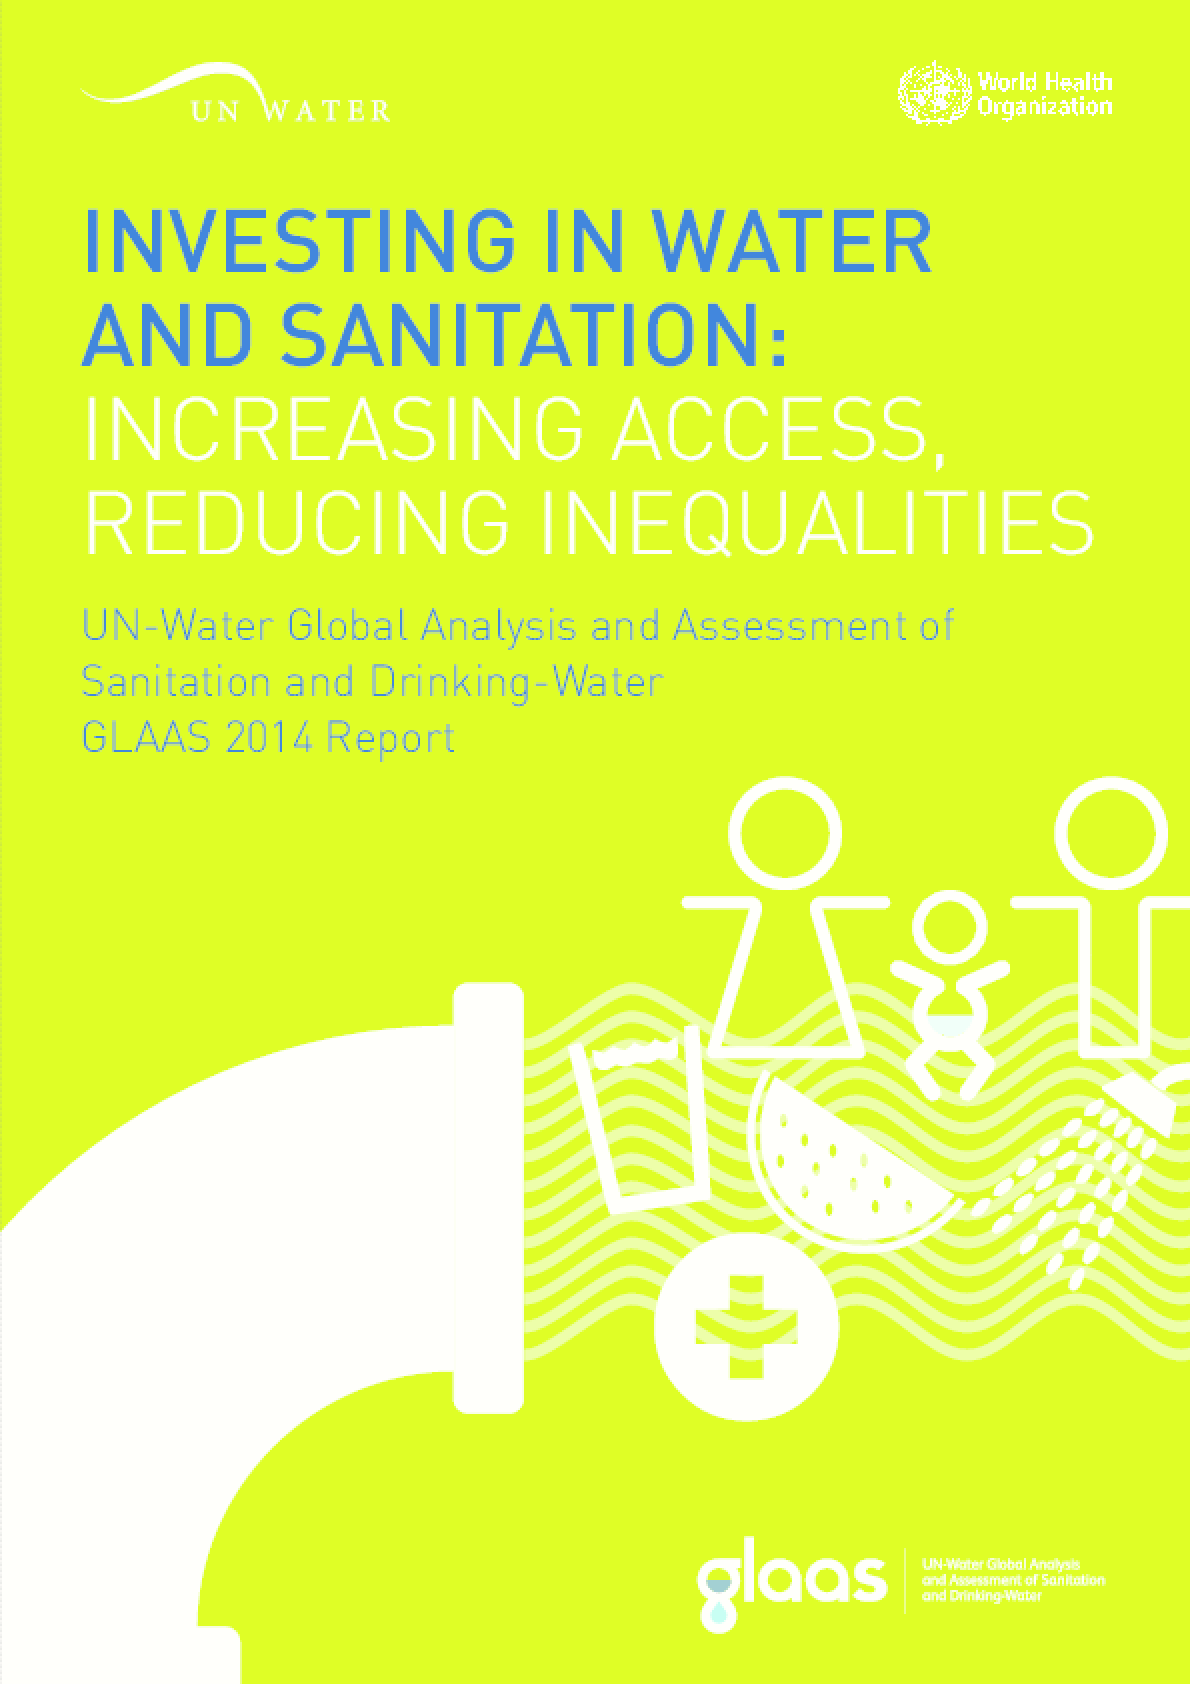 UN-Water Global Analysis and Assessment of Sanitation and Drinking-Water (GLAAS) 2014 Report: Investing in Water and Sanitation: Increasing access, reducing inequalities